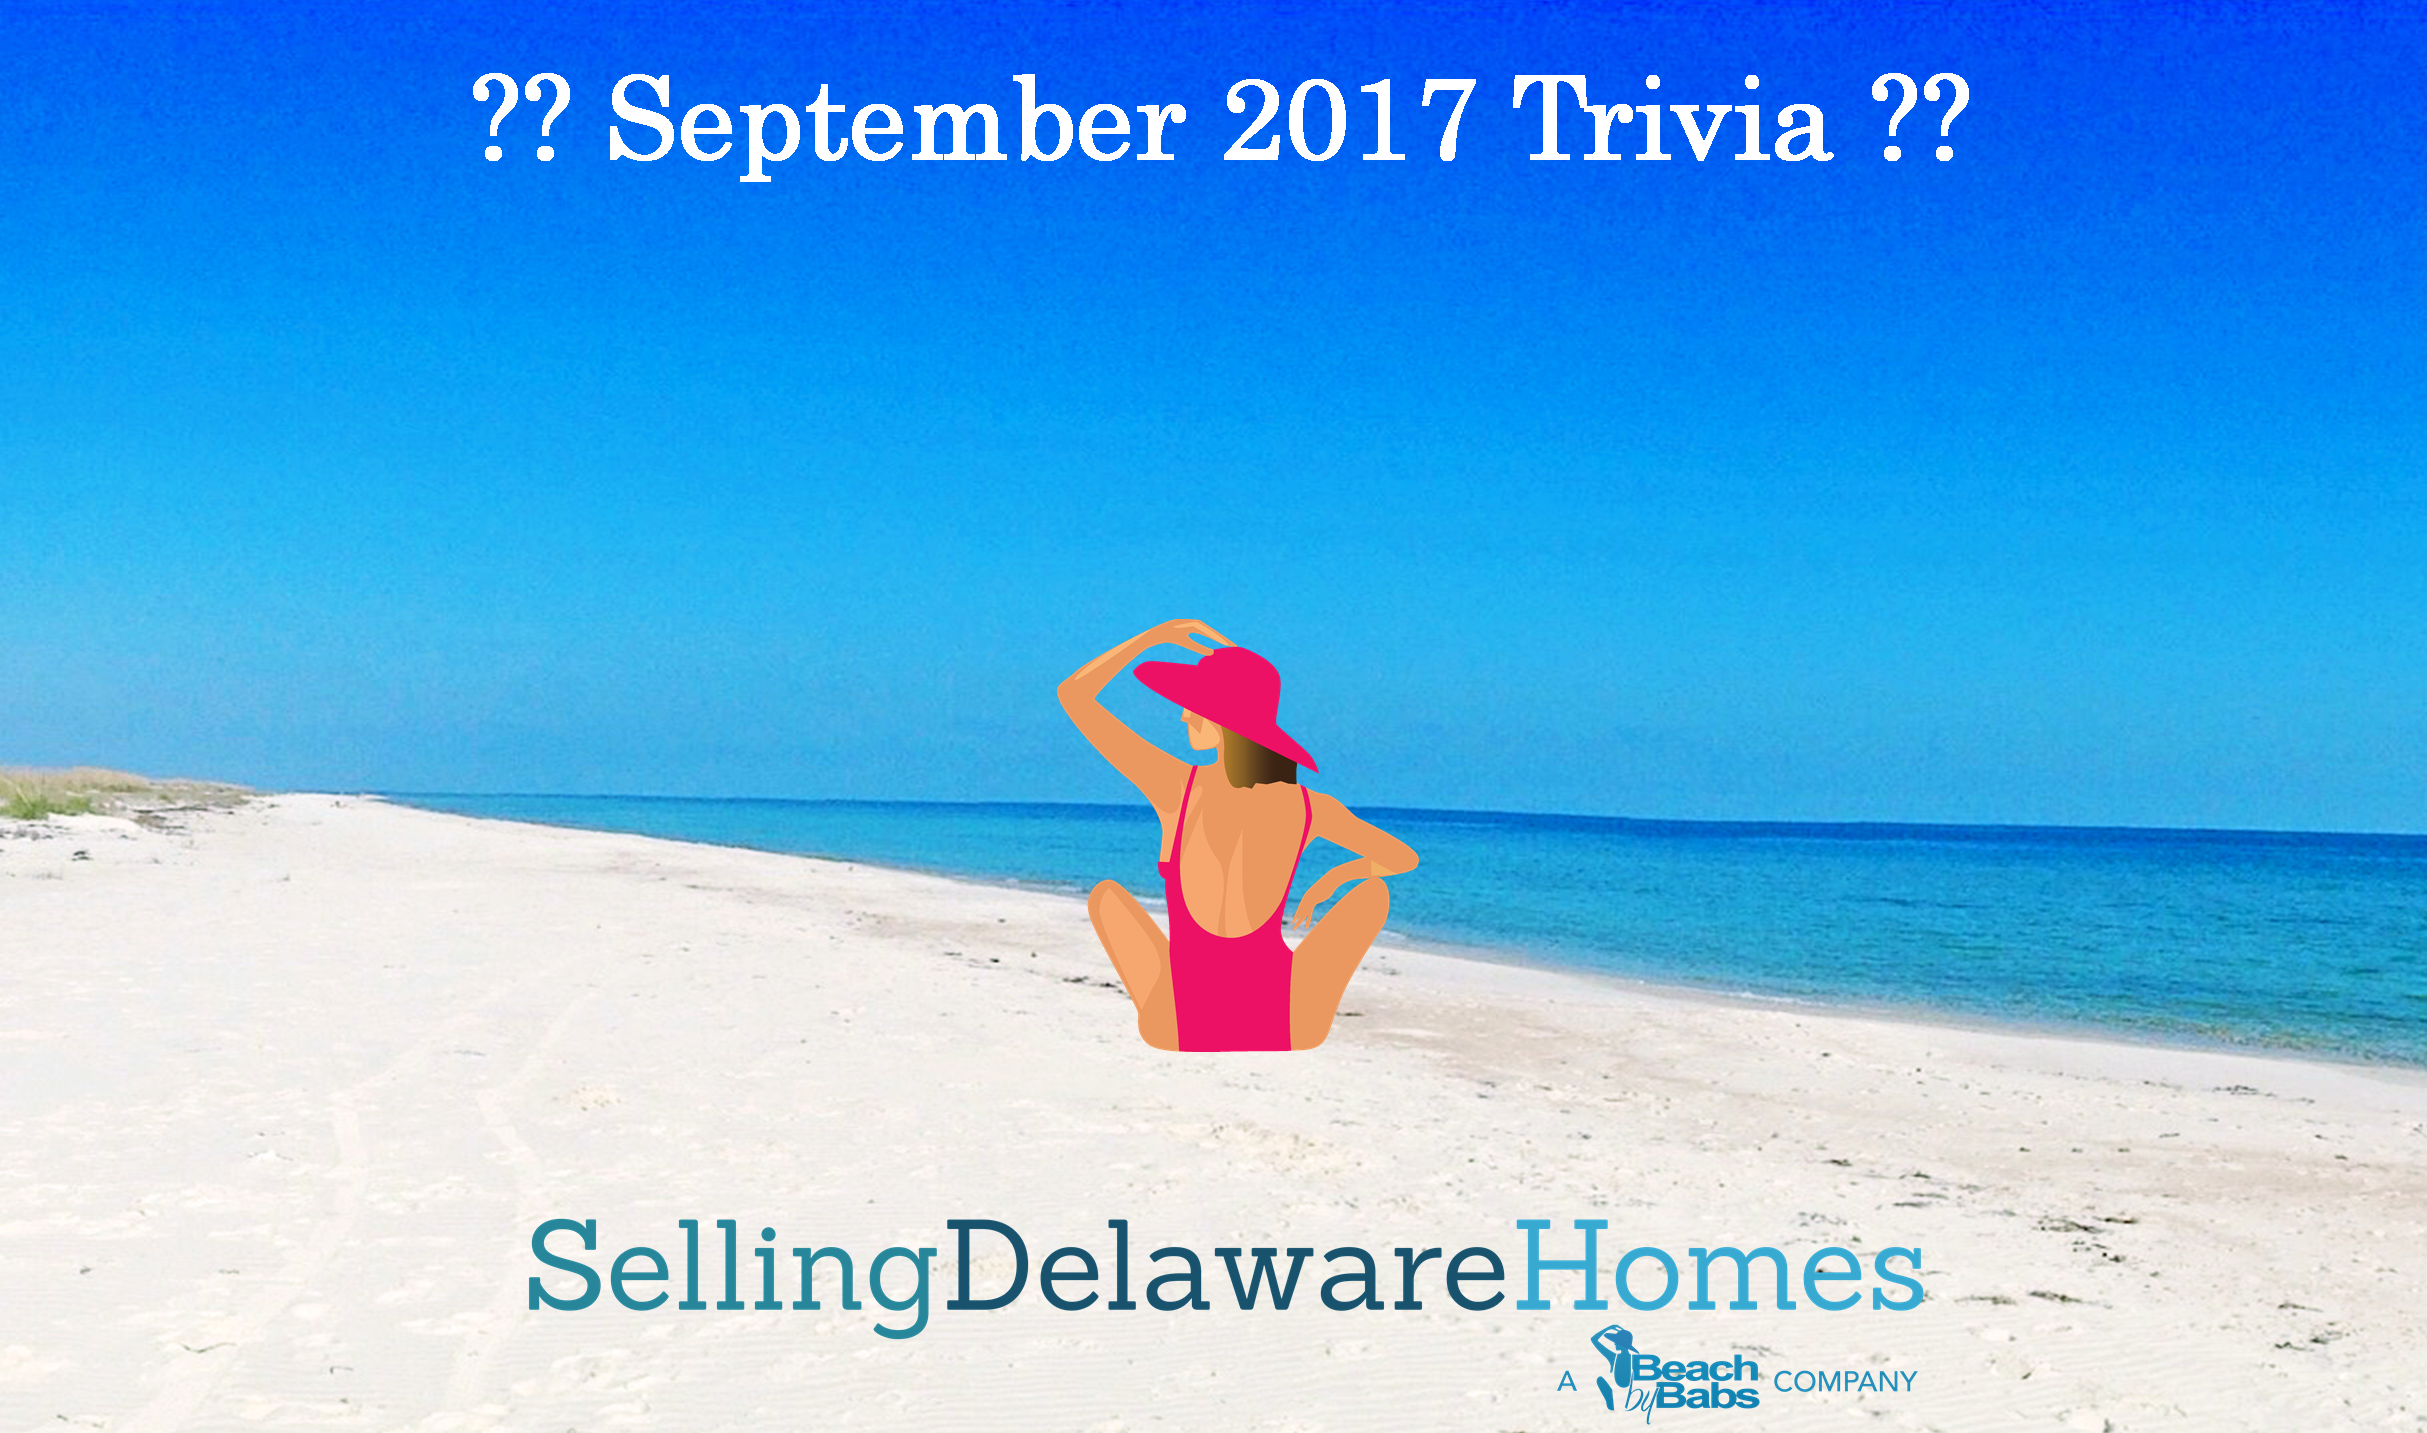 Monthly Trivia Answers For BeachByBabs Real Estate Monthly E-Newsletter – September 2017